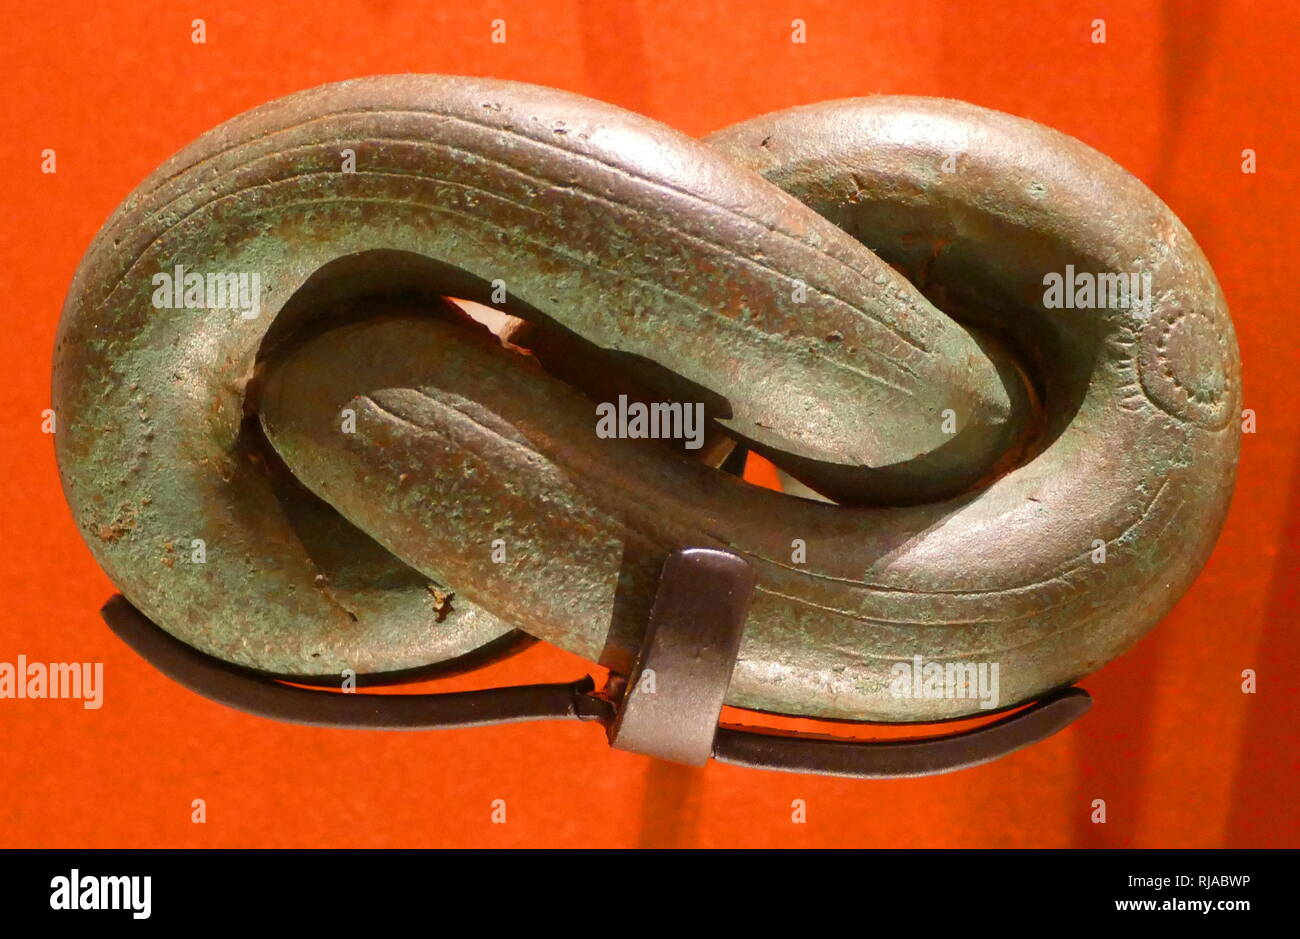 Cast bronze, Knotted manilla bracelet, excavated at Igbo Ukwu, Nigeria. 9th-10th century - Stock Image